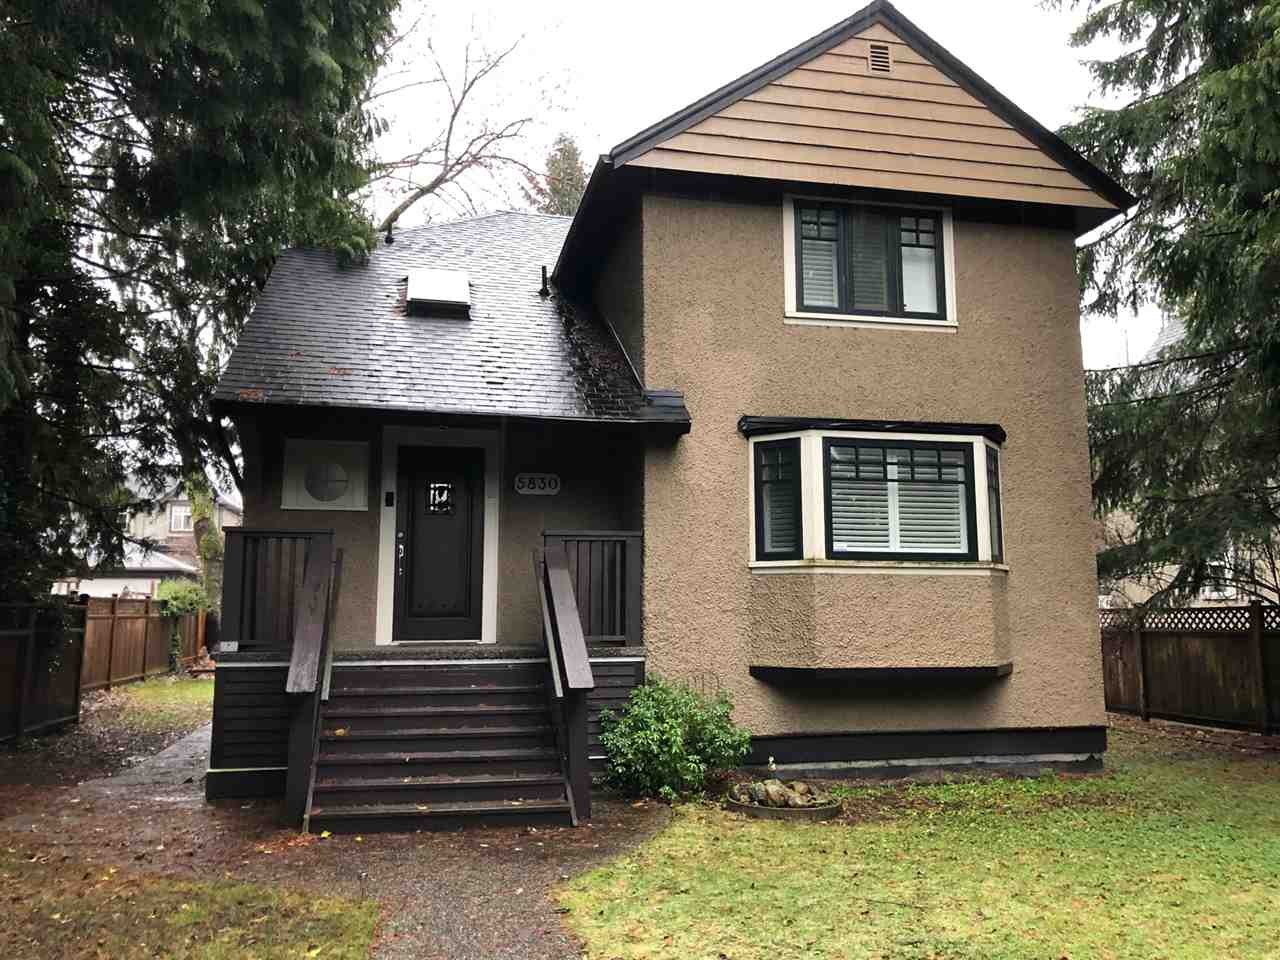 5830 GRANVILLE STREET - South Granville House/Single Family for sale, 5 Bedrooms (R2524983)